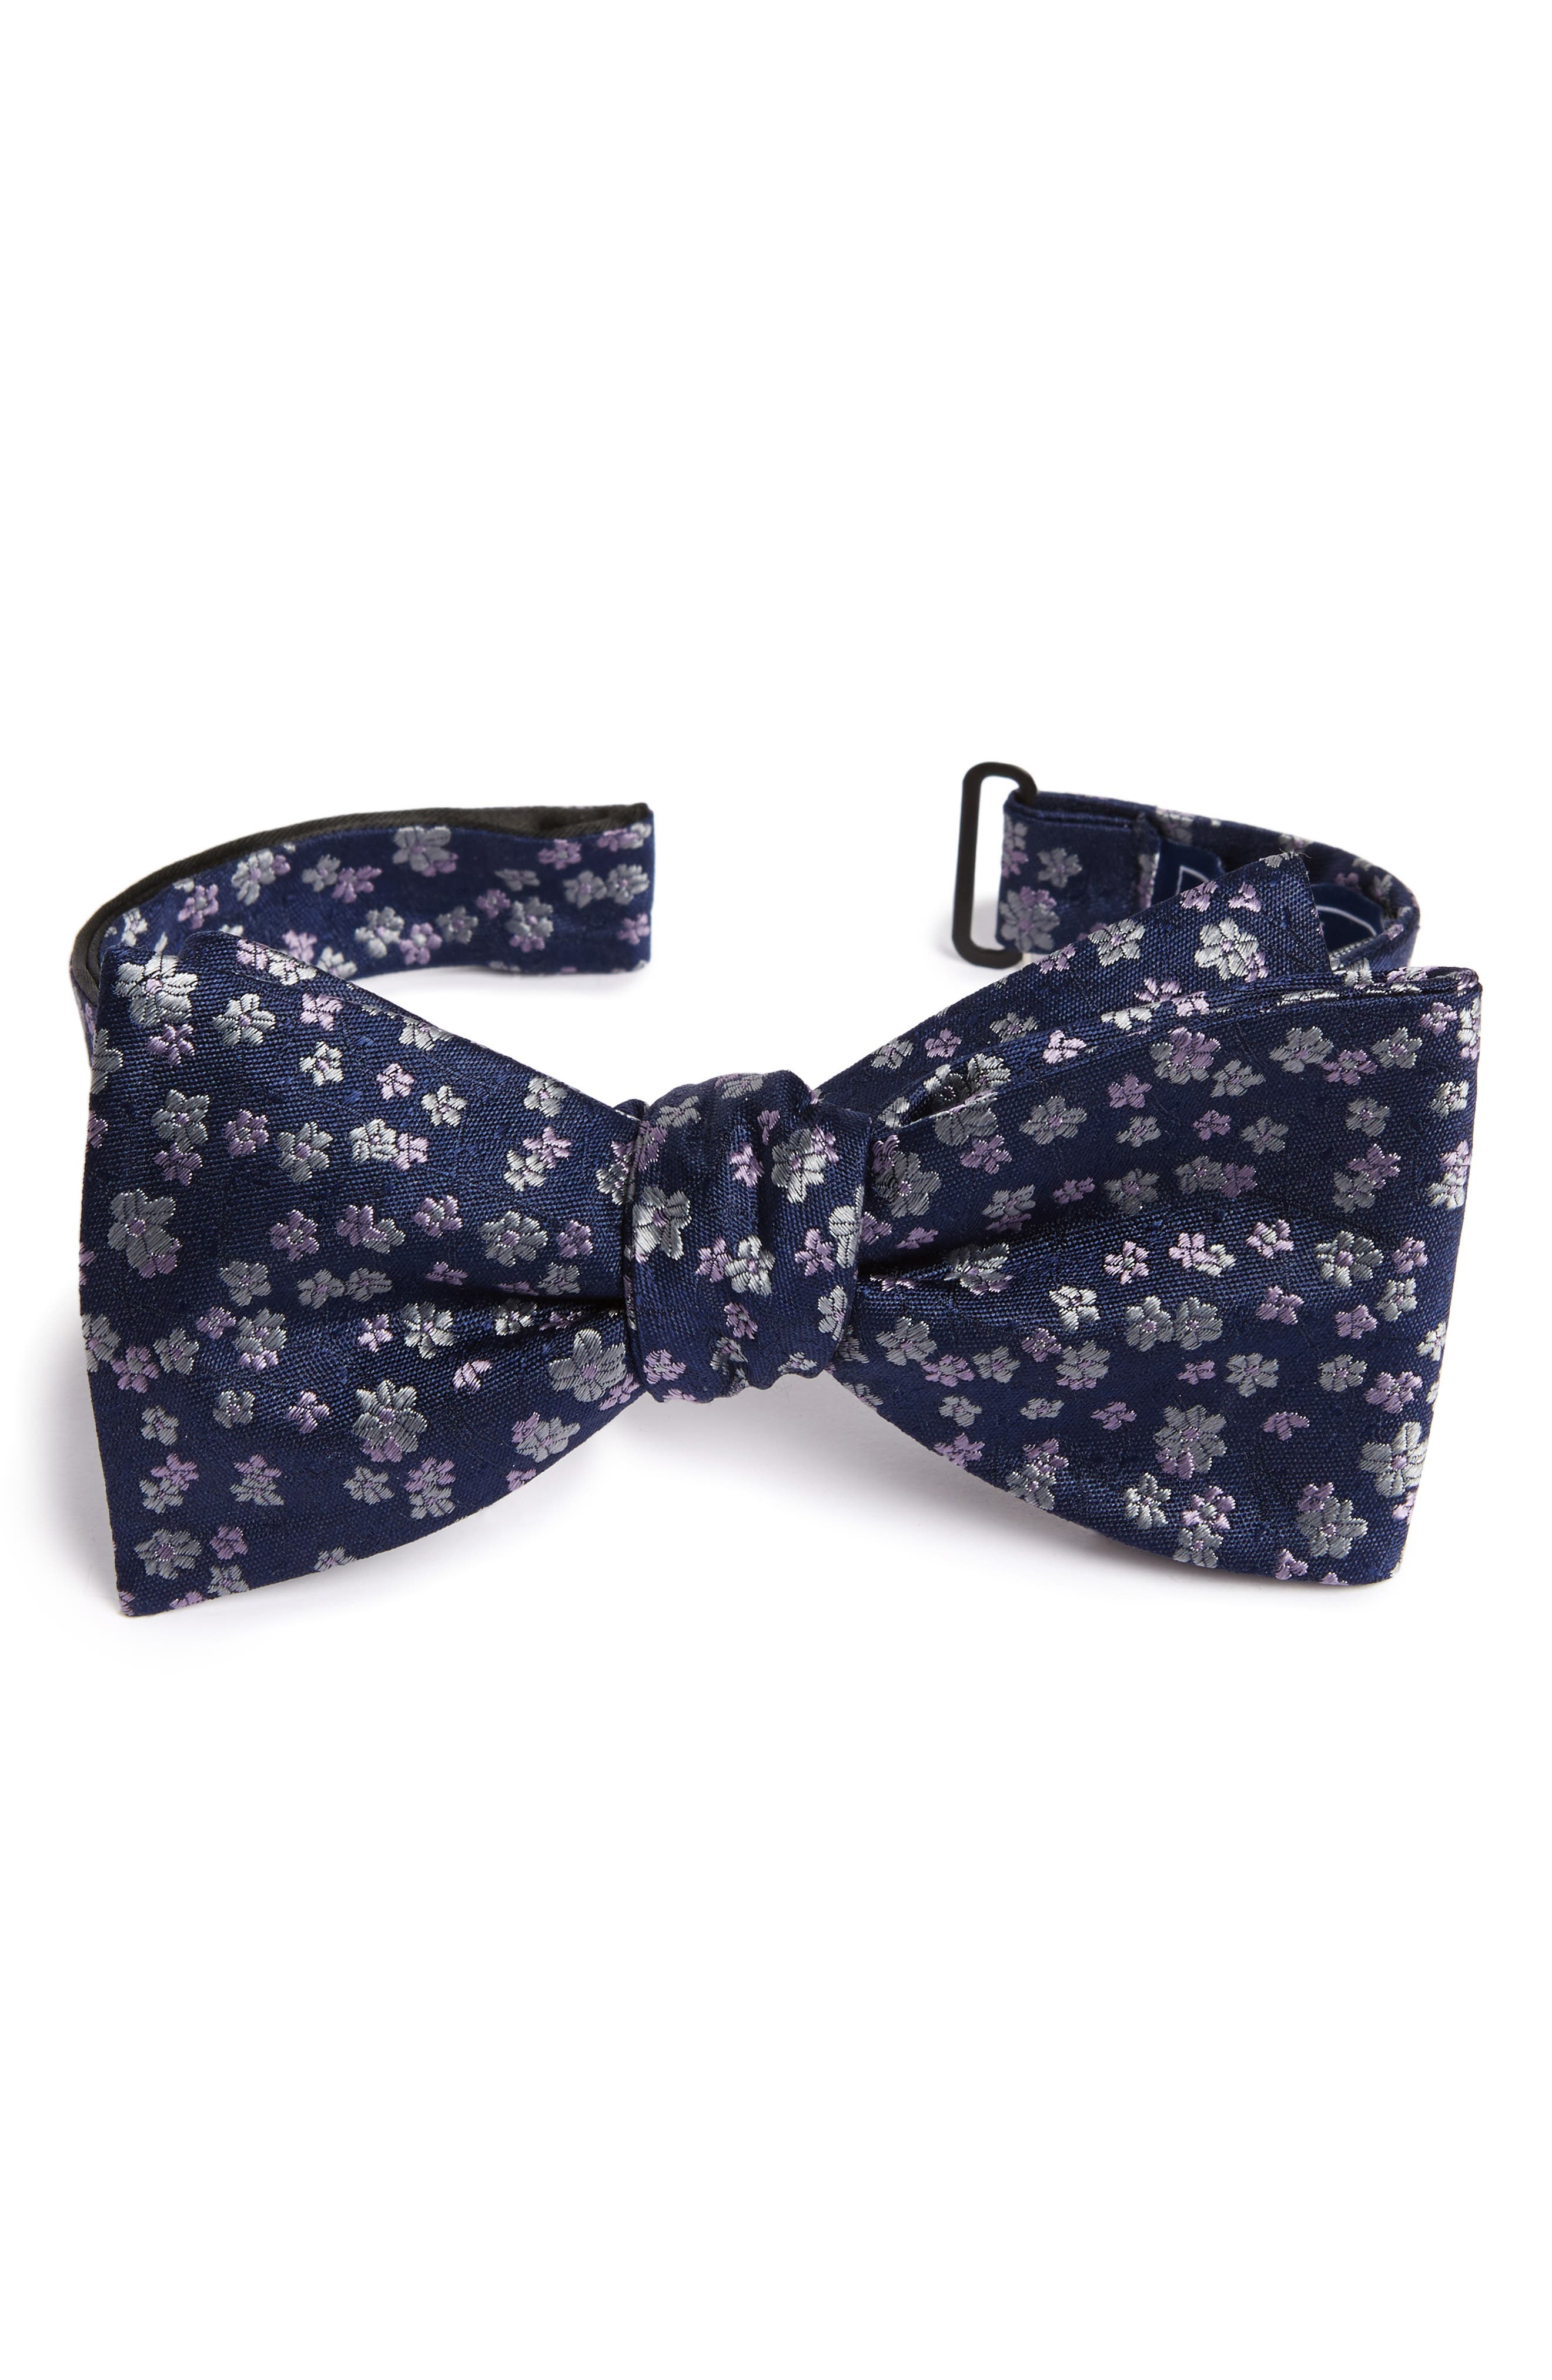 Free Fall Floral Silk Bow Tie,                             Main thumbnail 1, color,                             Lavender